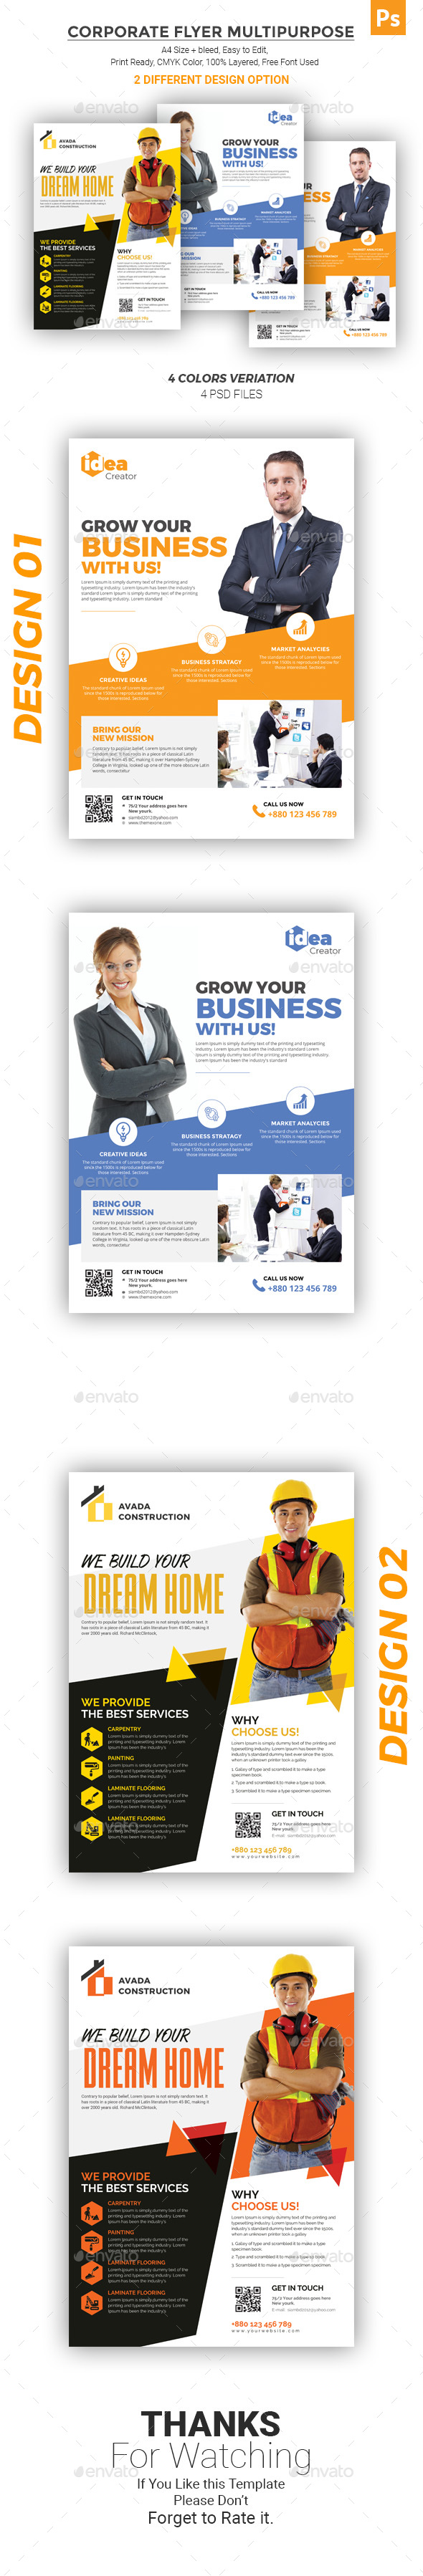 GraphicRiver Corporate Flyer Multipurpose 21149081